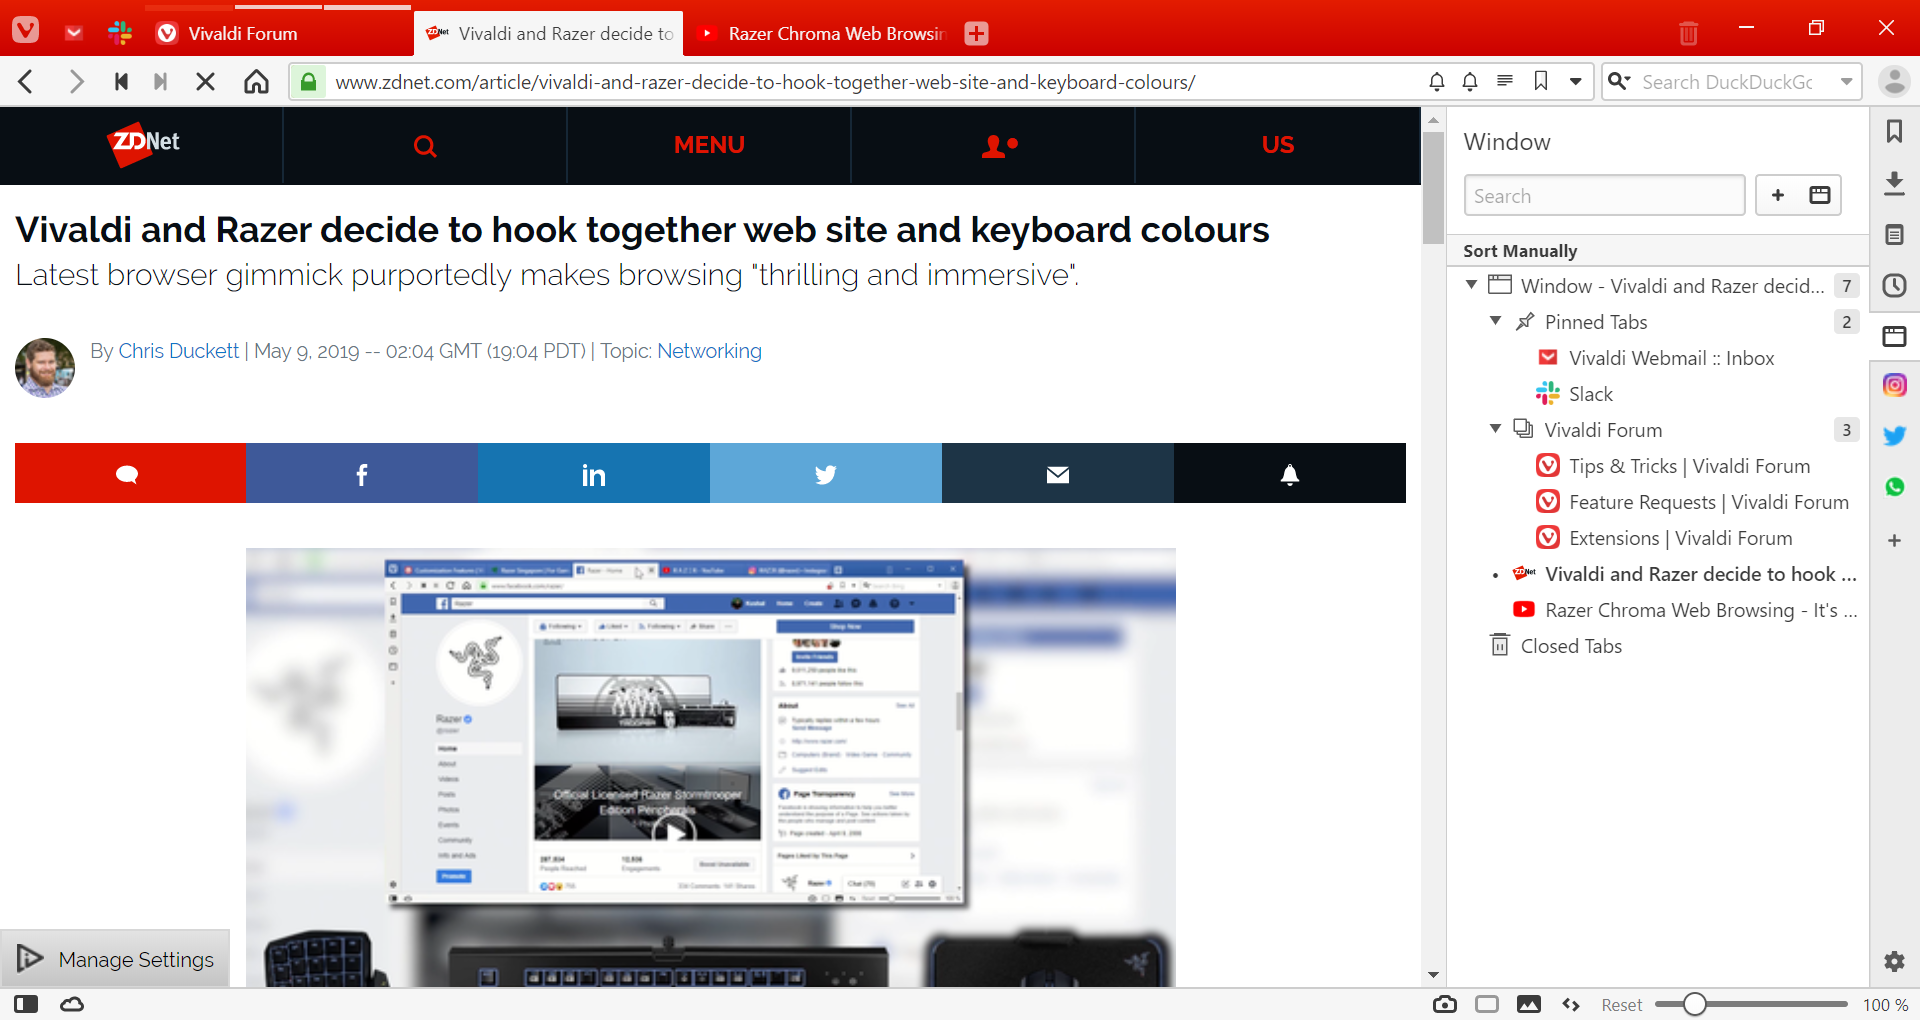 Panels on the right side of the browser window